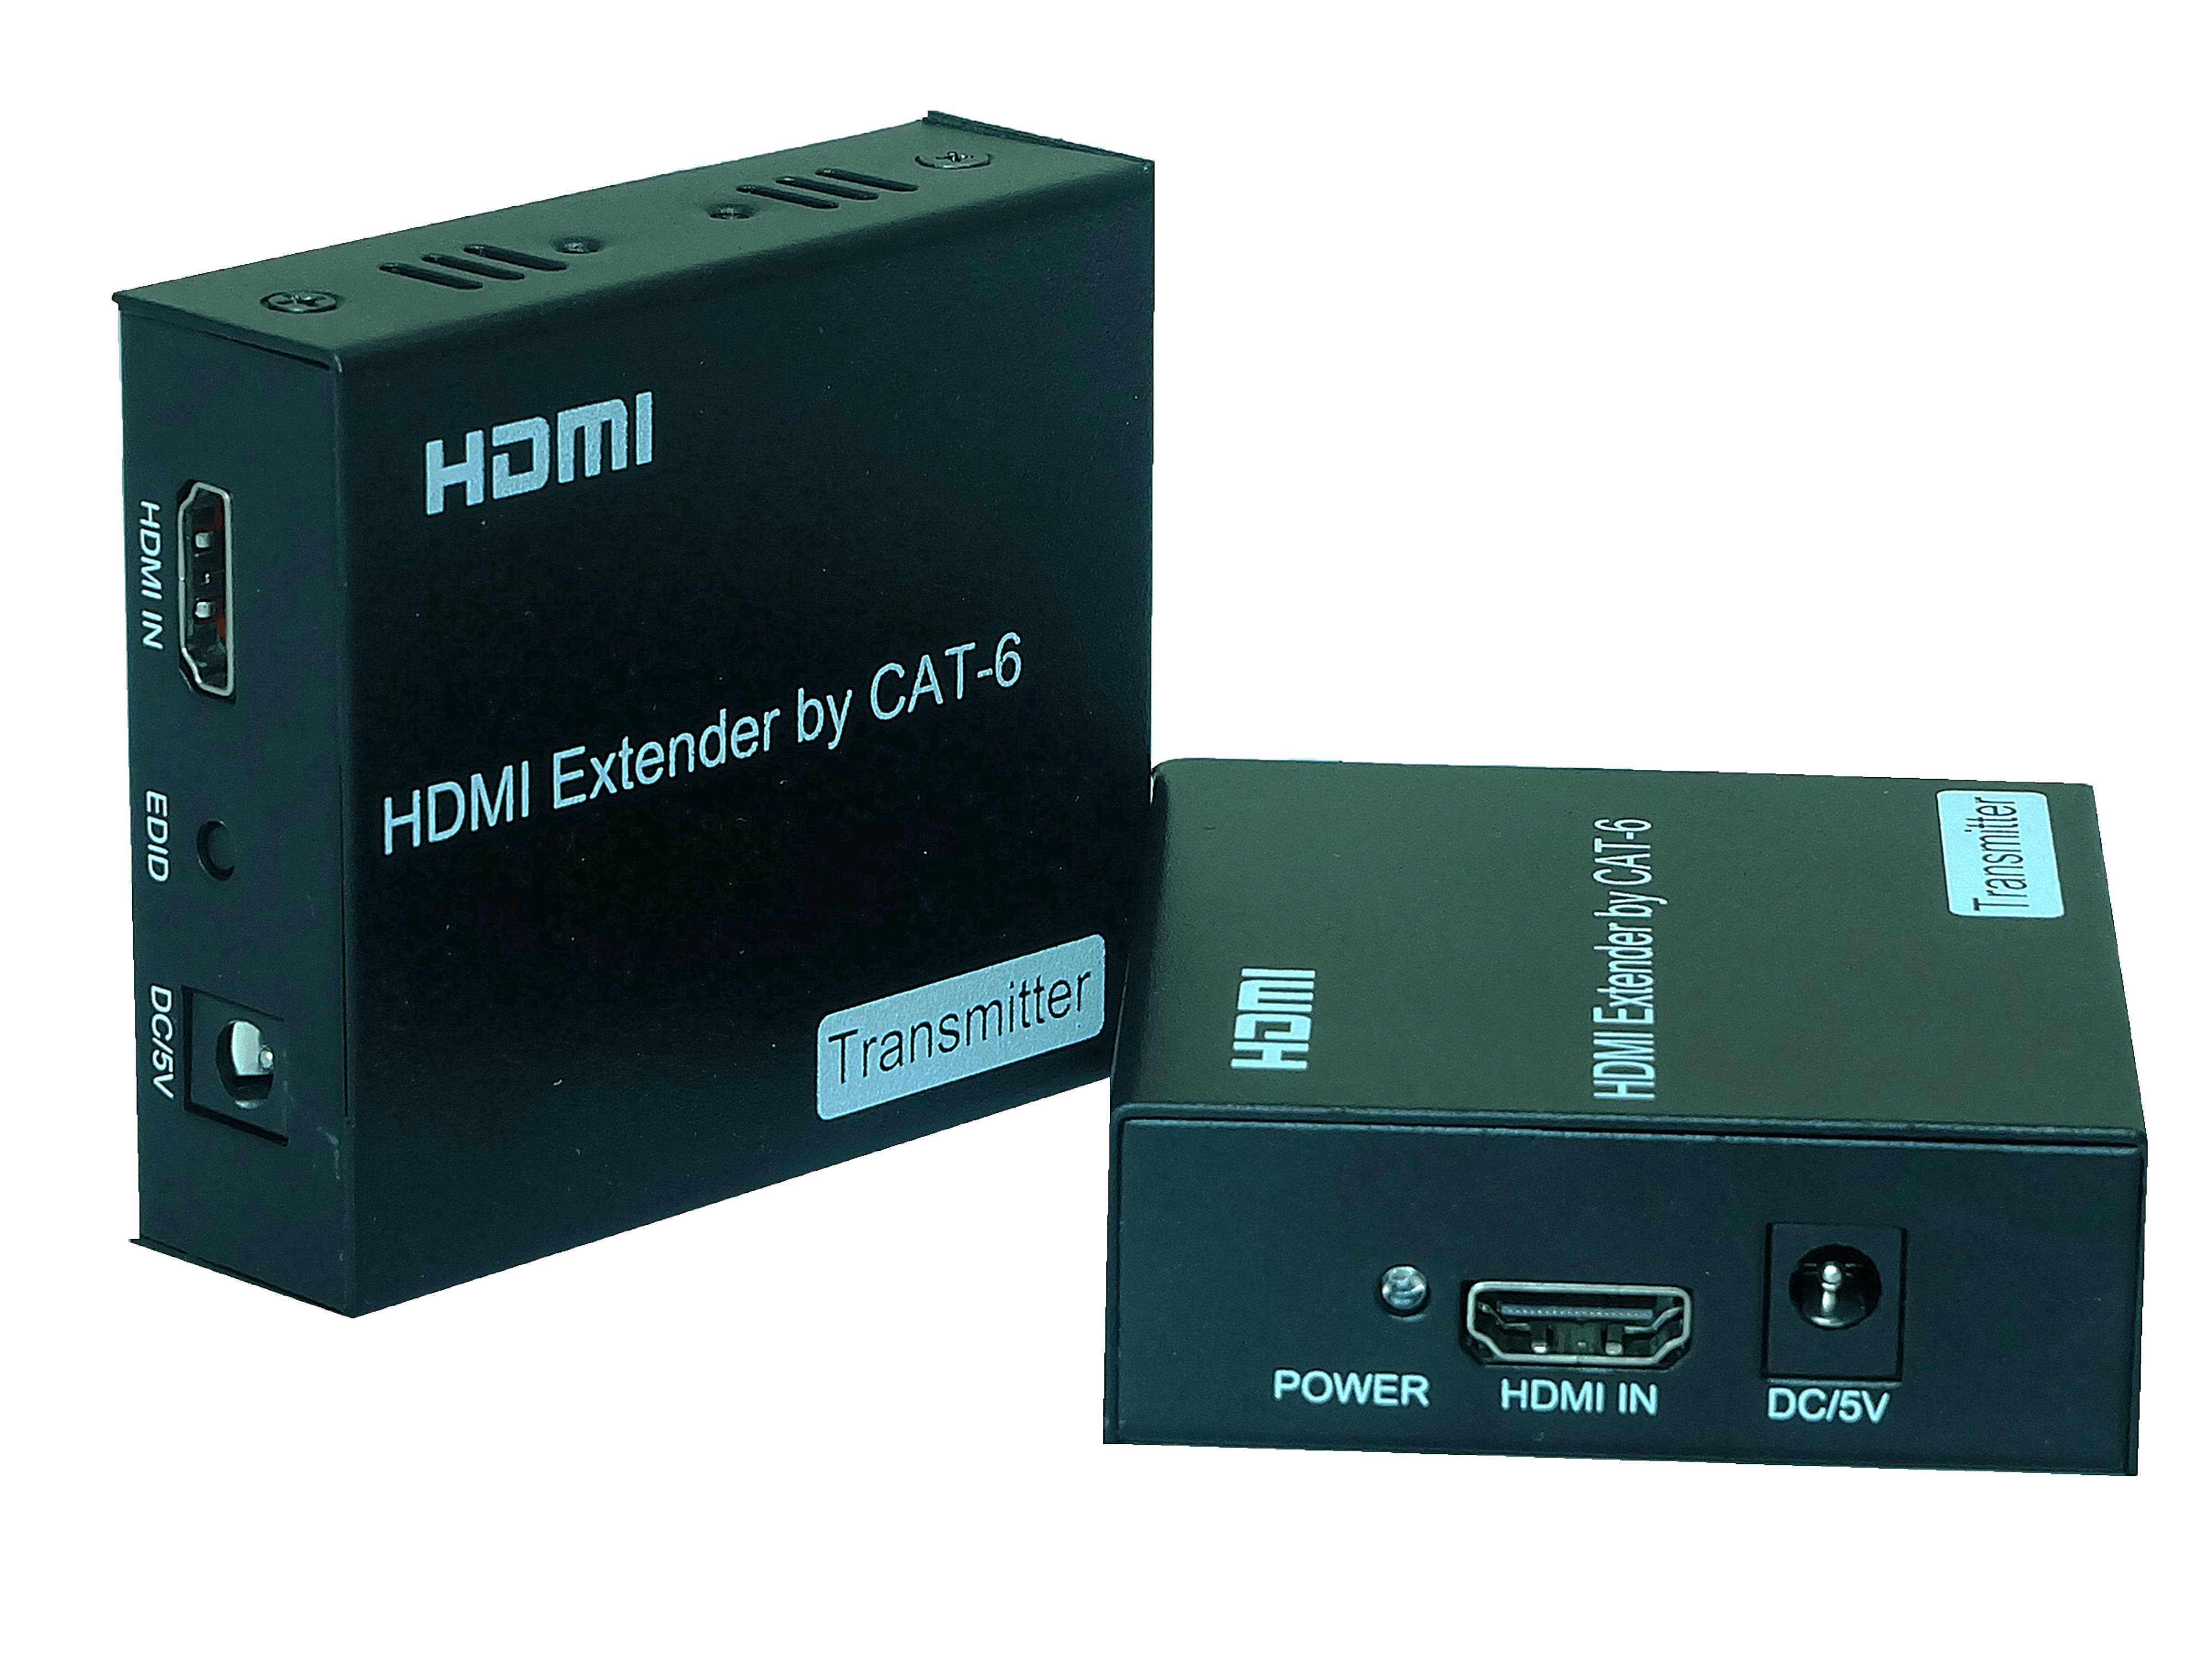 hdmi-extender-over-single-cat6-with-local-hdmi-out-port1-copy